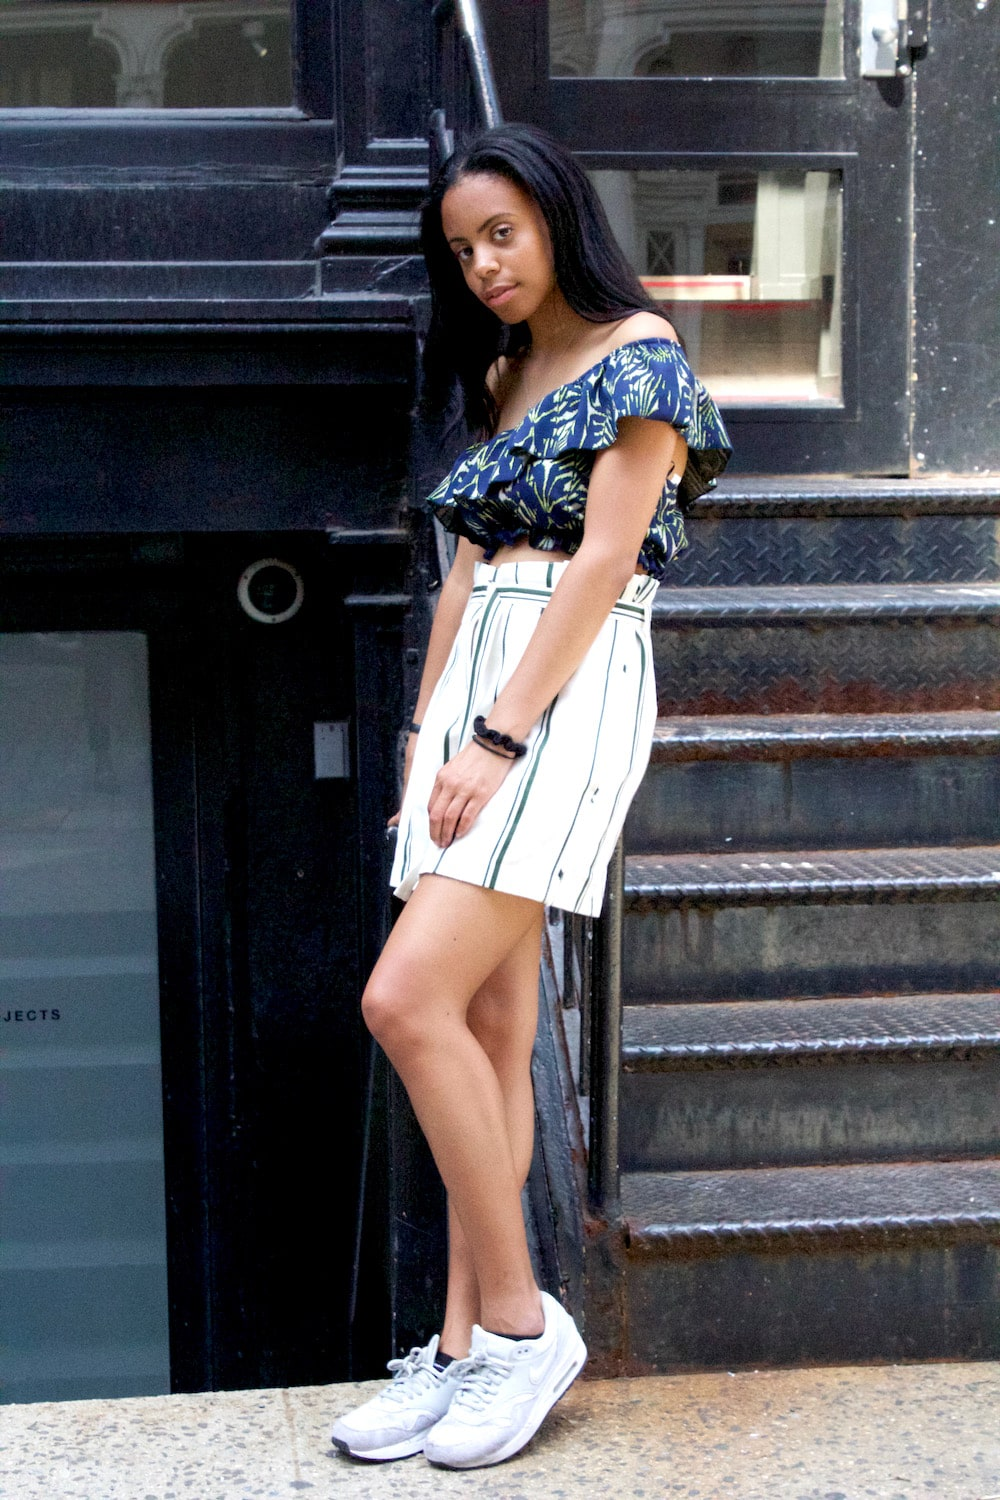 College style in NYC: Notre Dame student Sierra wears a vertical striped mini skirt, off-the-shoulder palm print crop top in navy and green, and gray Nike sneakers